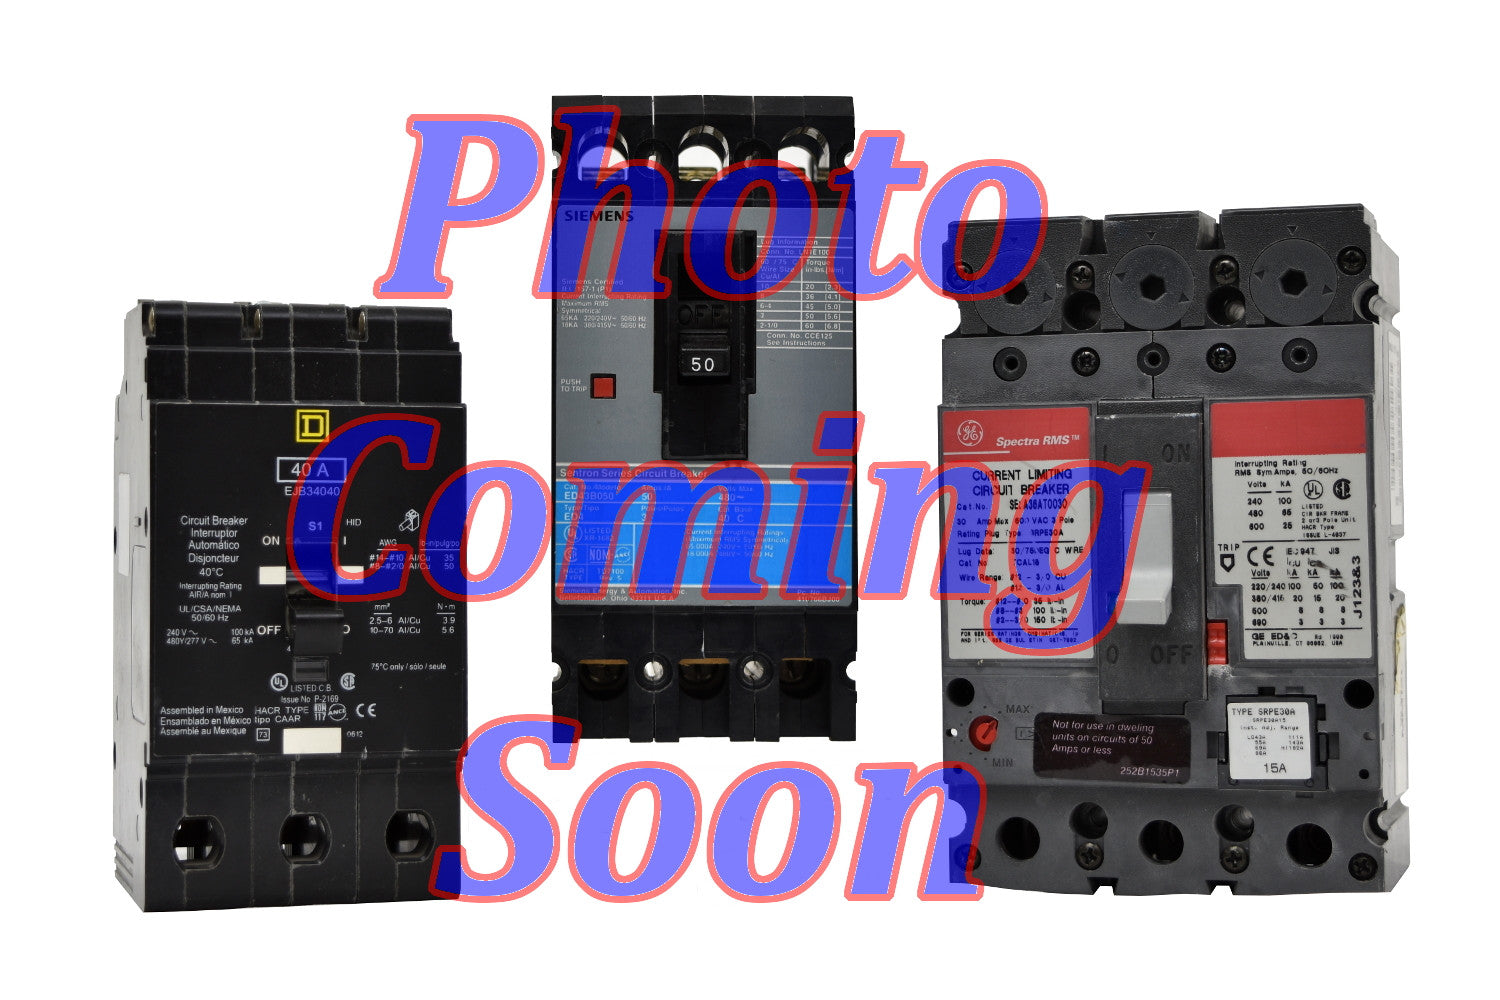 General Electric FCV36TE070R2 Circuit Breakers